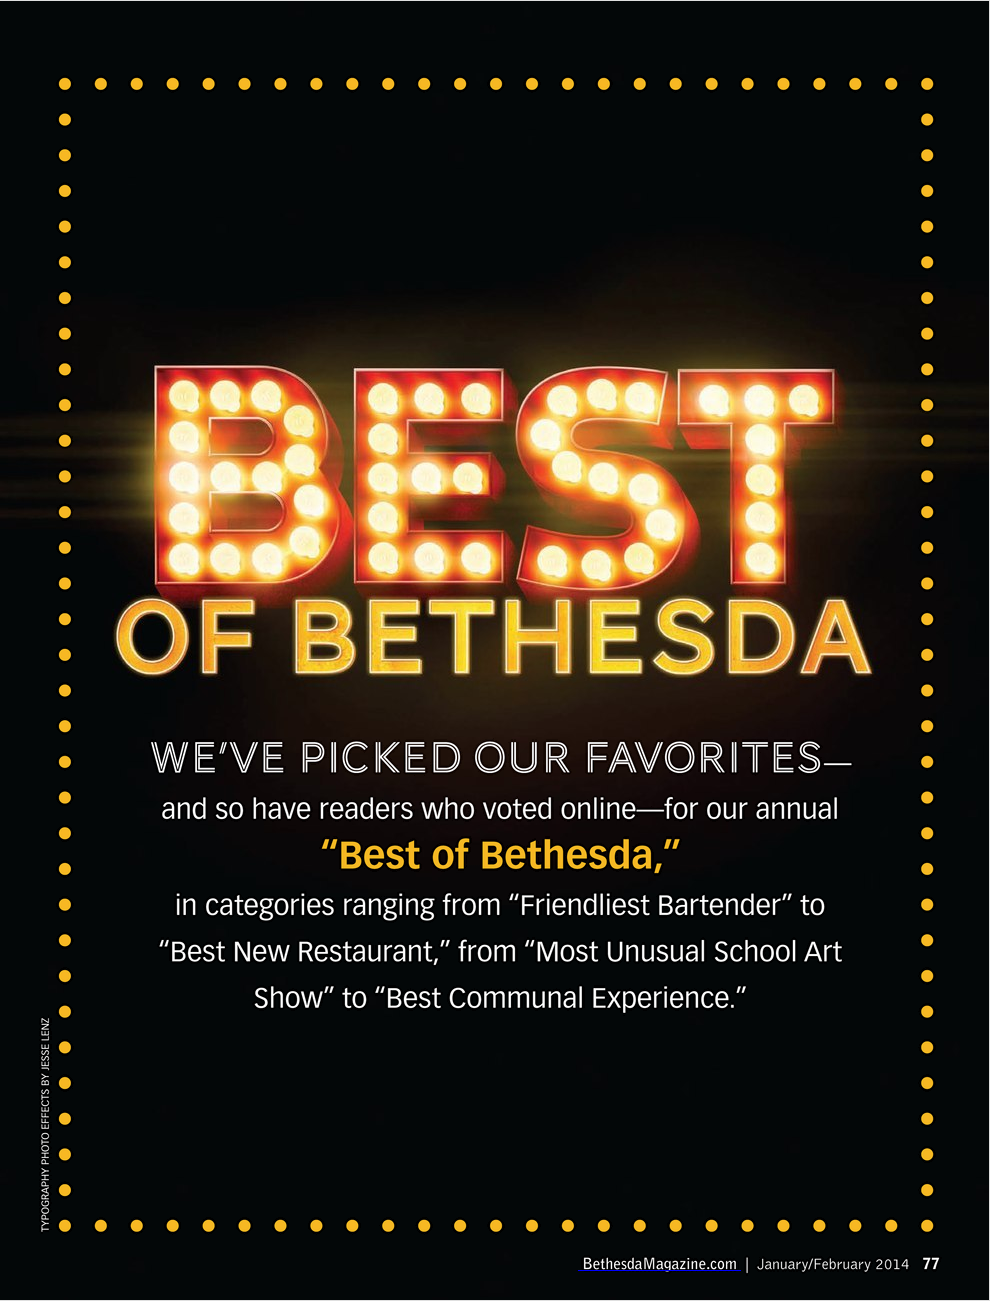 Best of Bethesda award